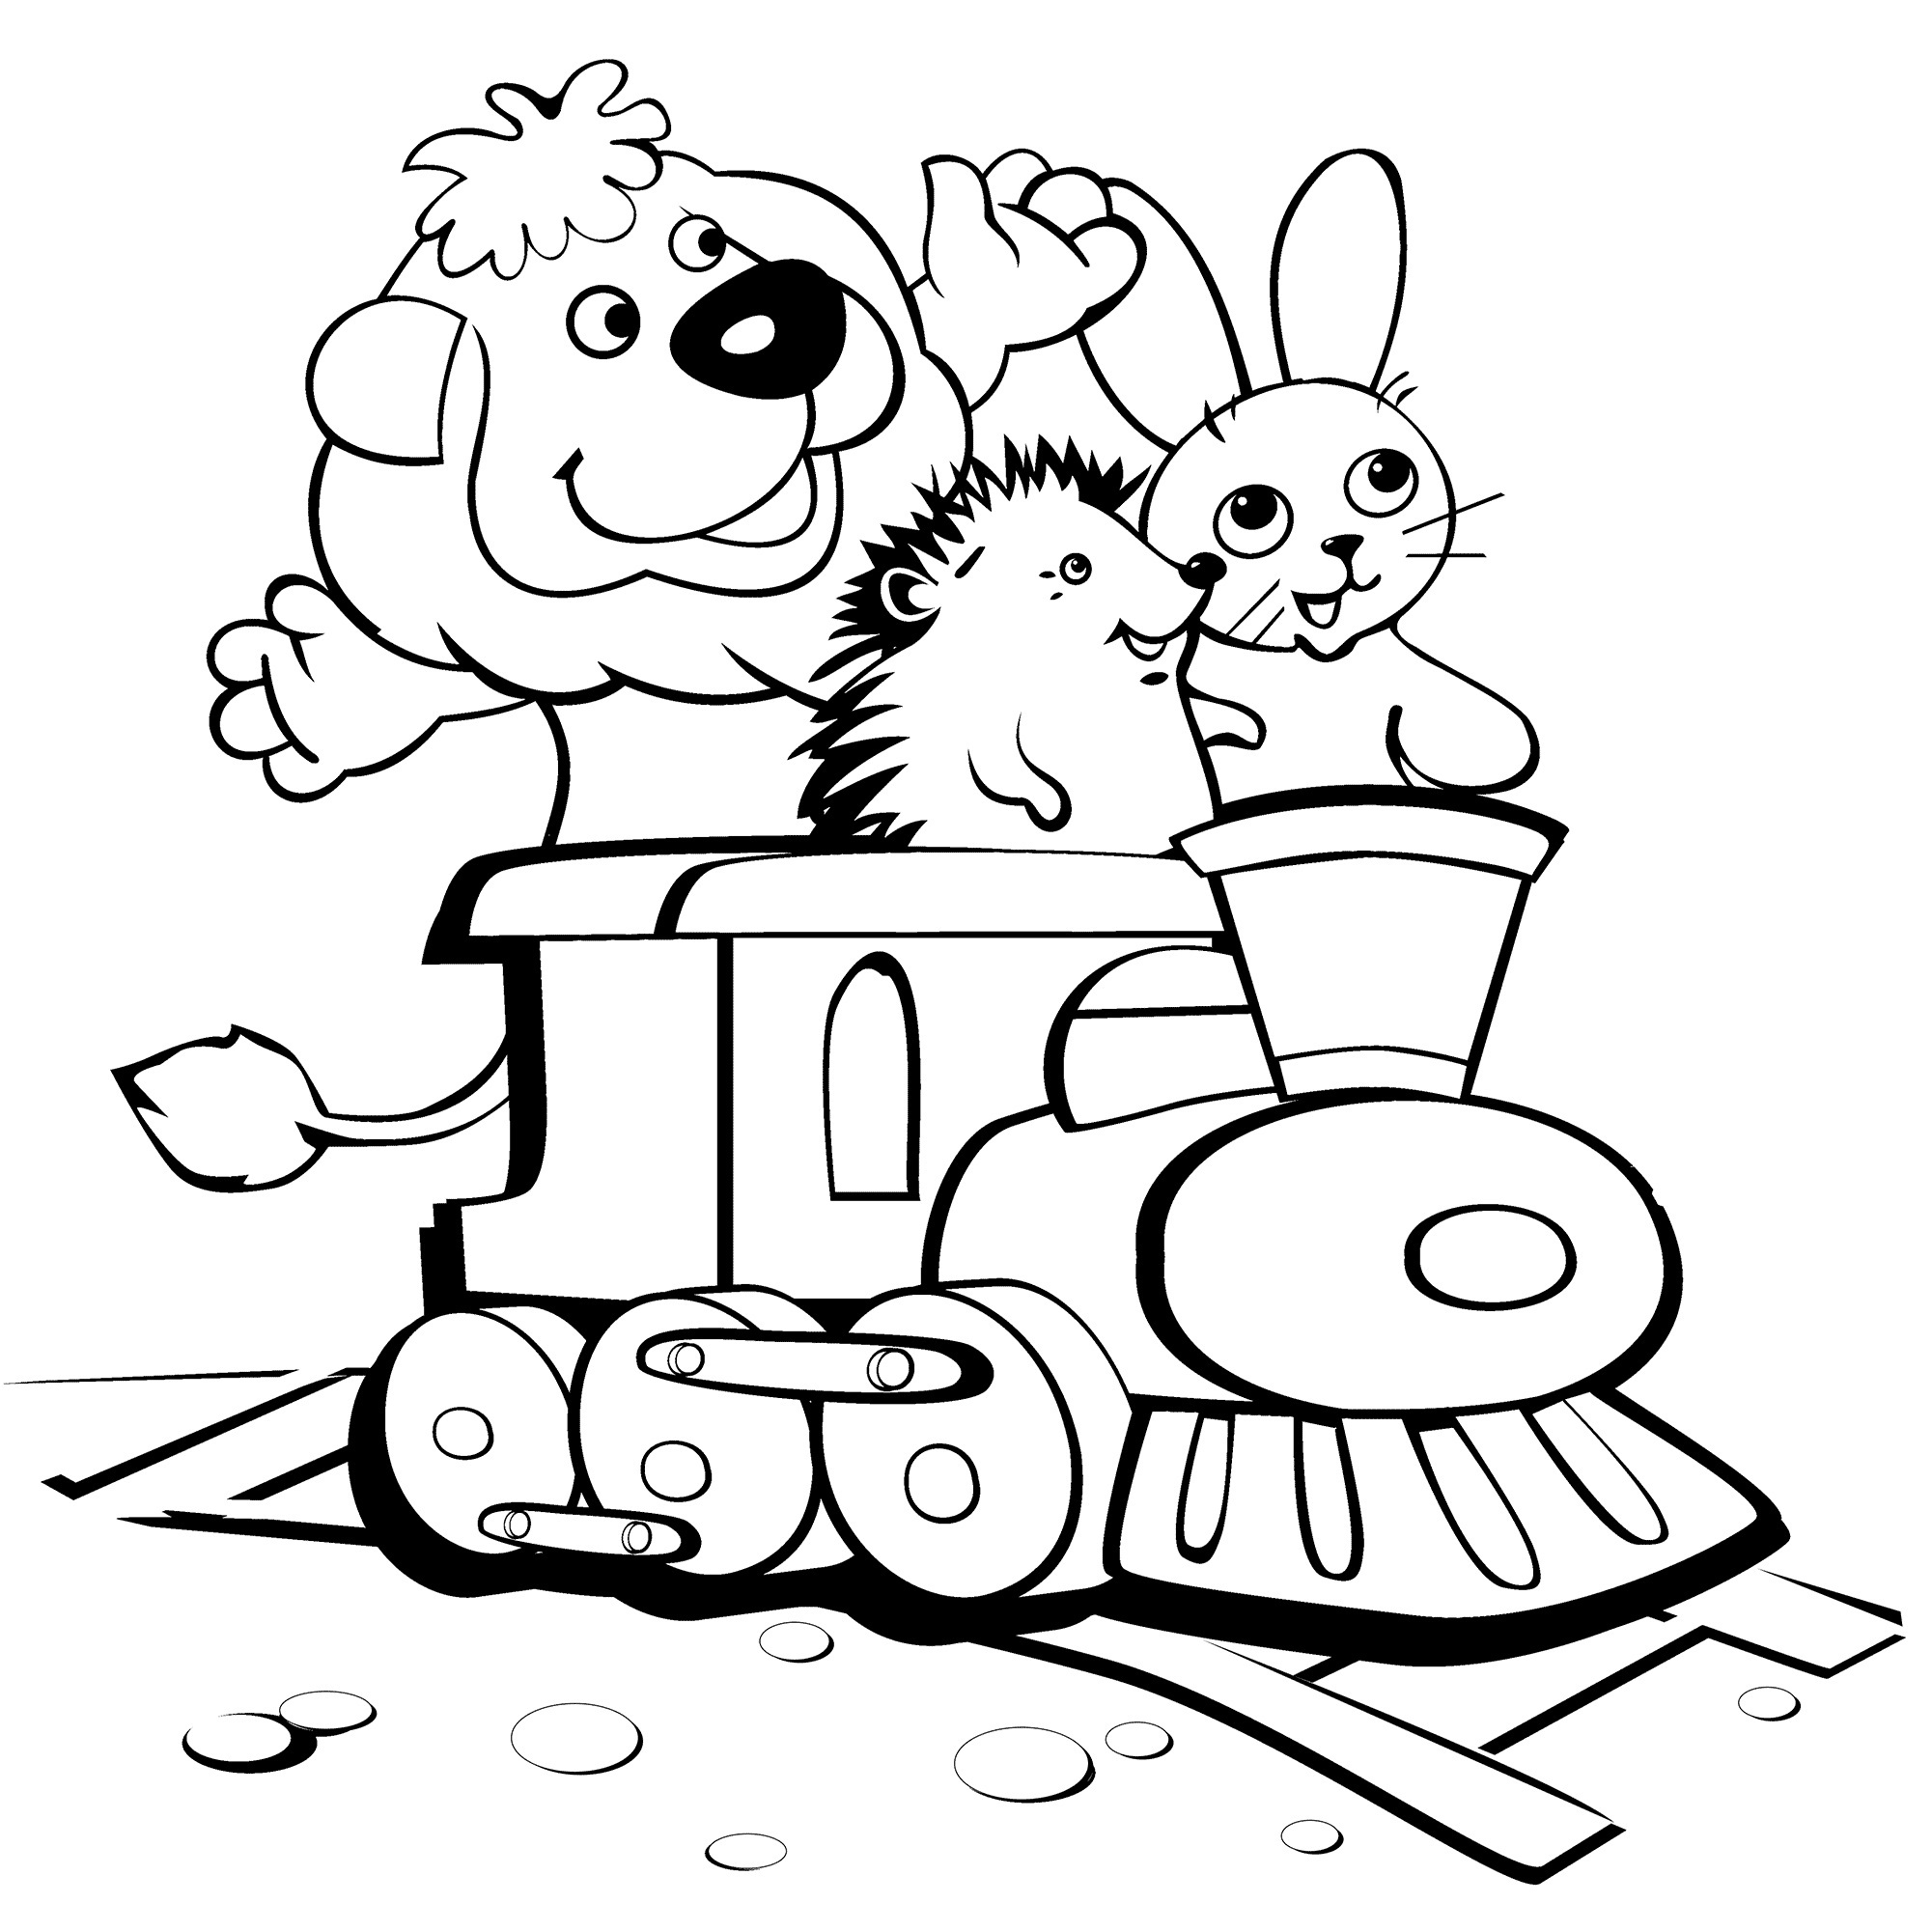 Coloring pages trains for kids - Printable Funny Coloring Page